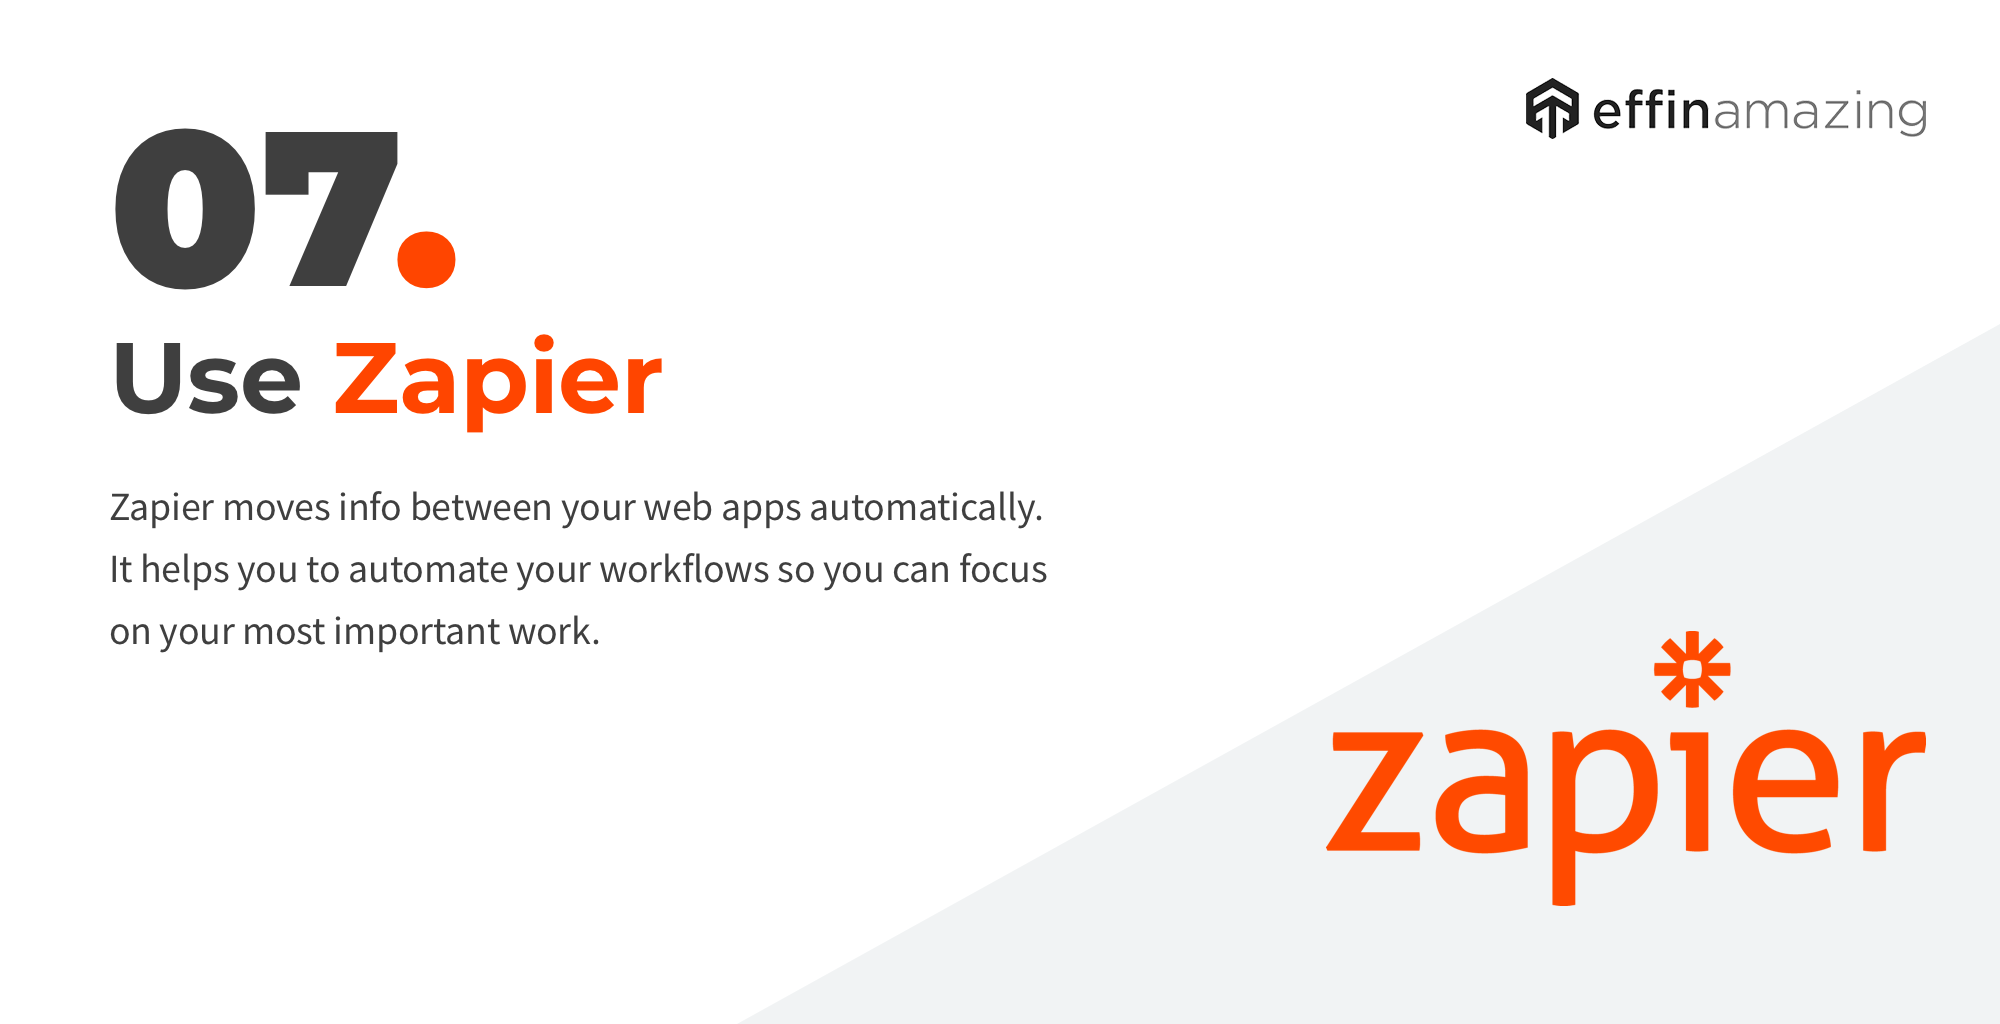 Zapier automate workflows